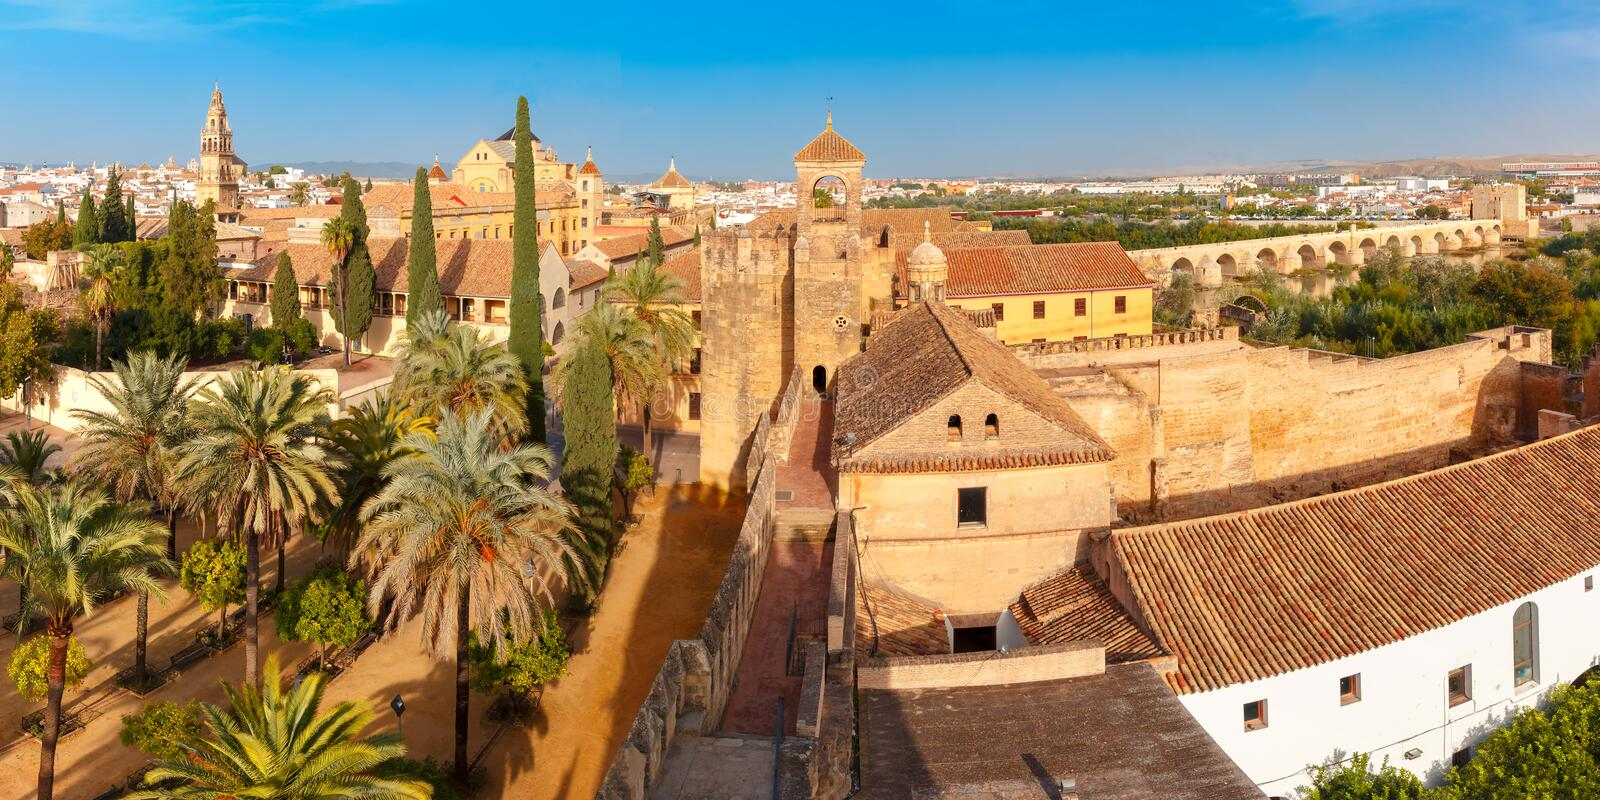 View of Mezquita from Alcazar in Cordoba, Spain royalty free stock images